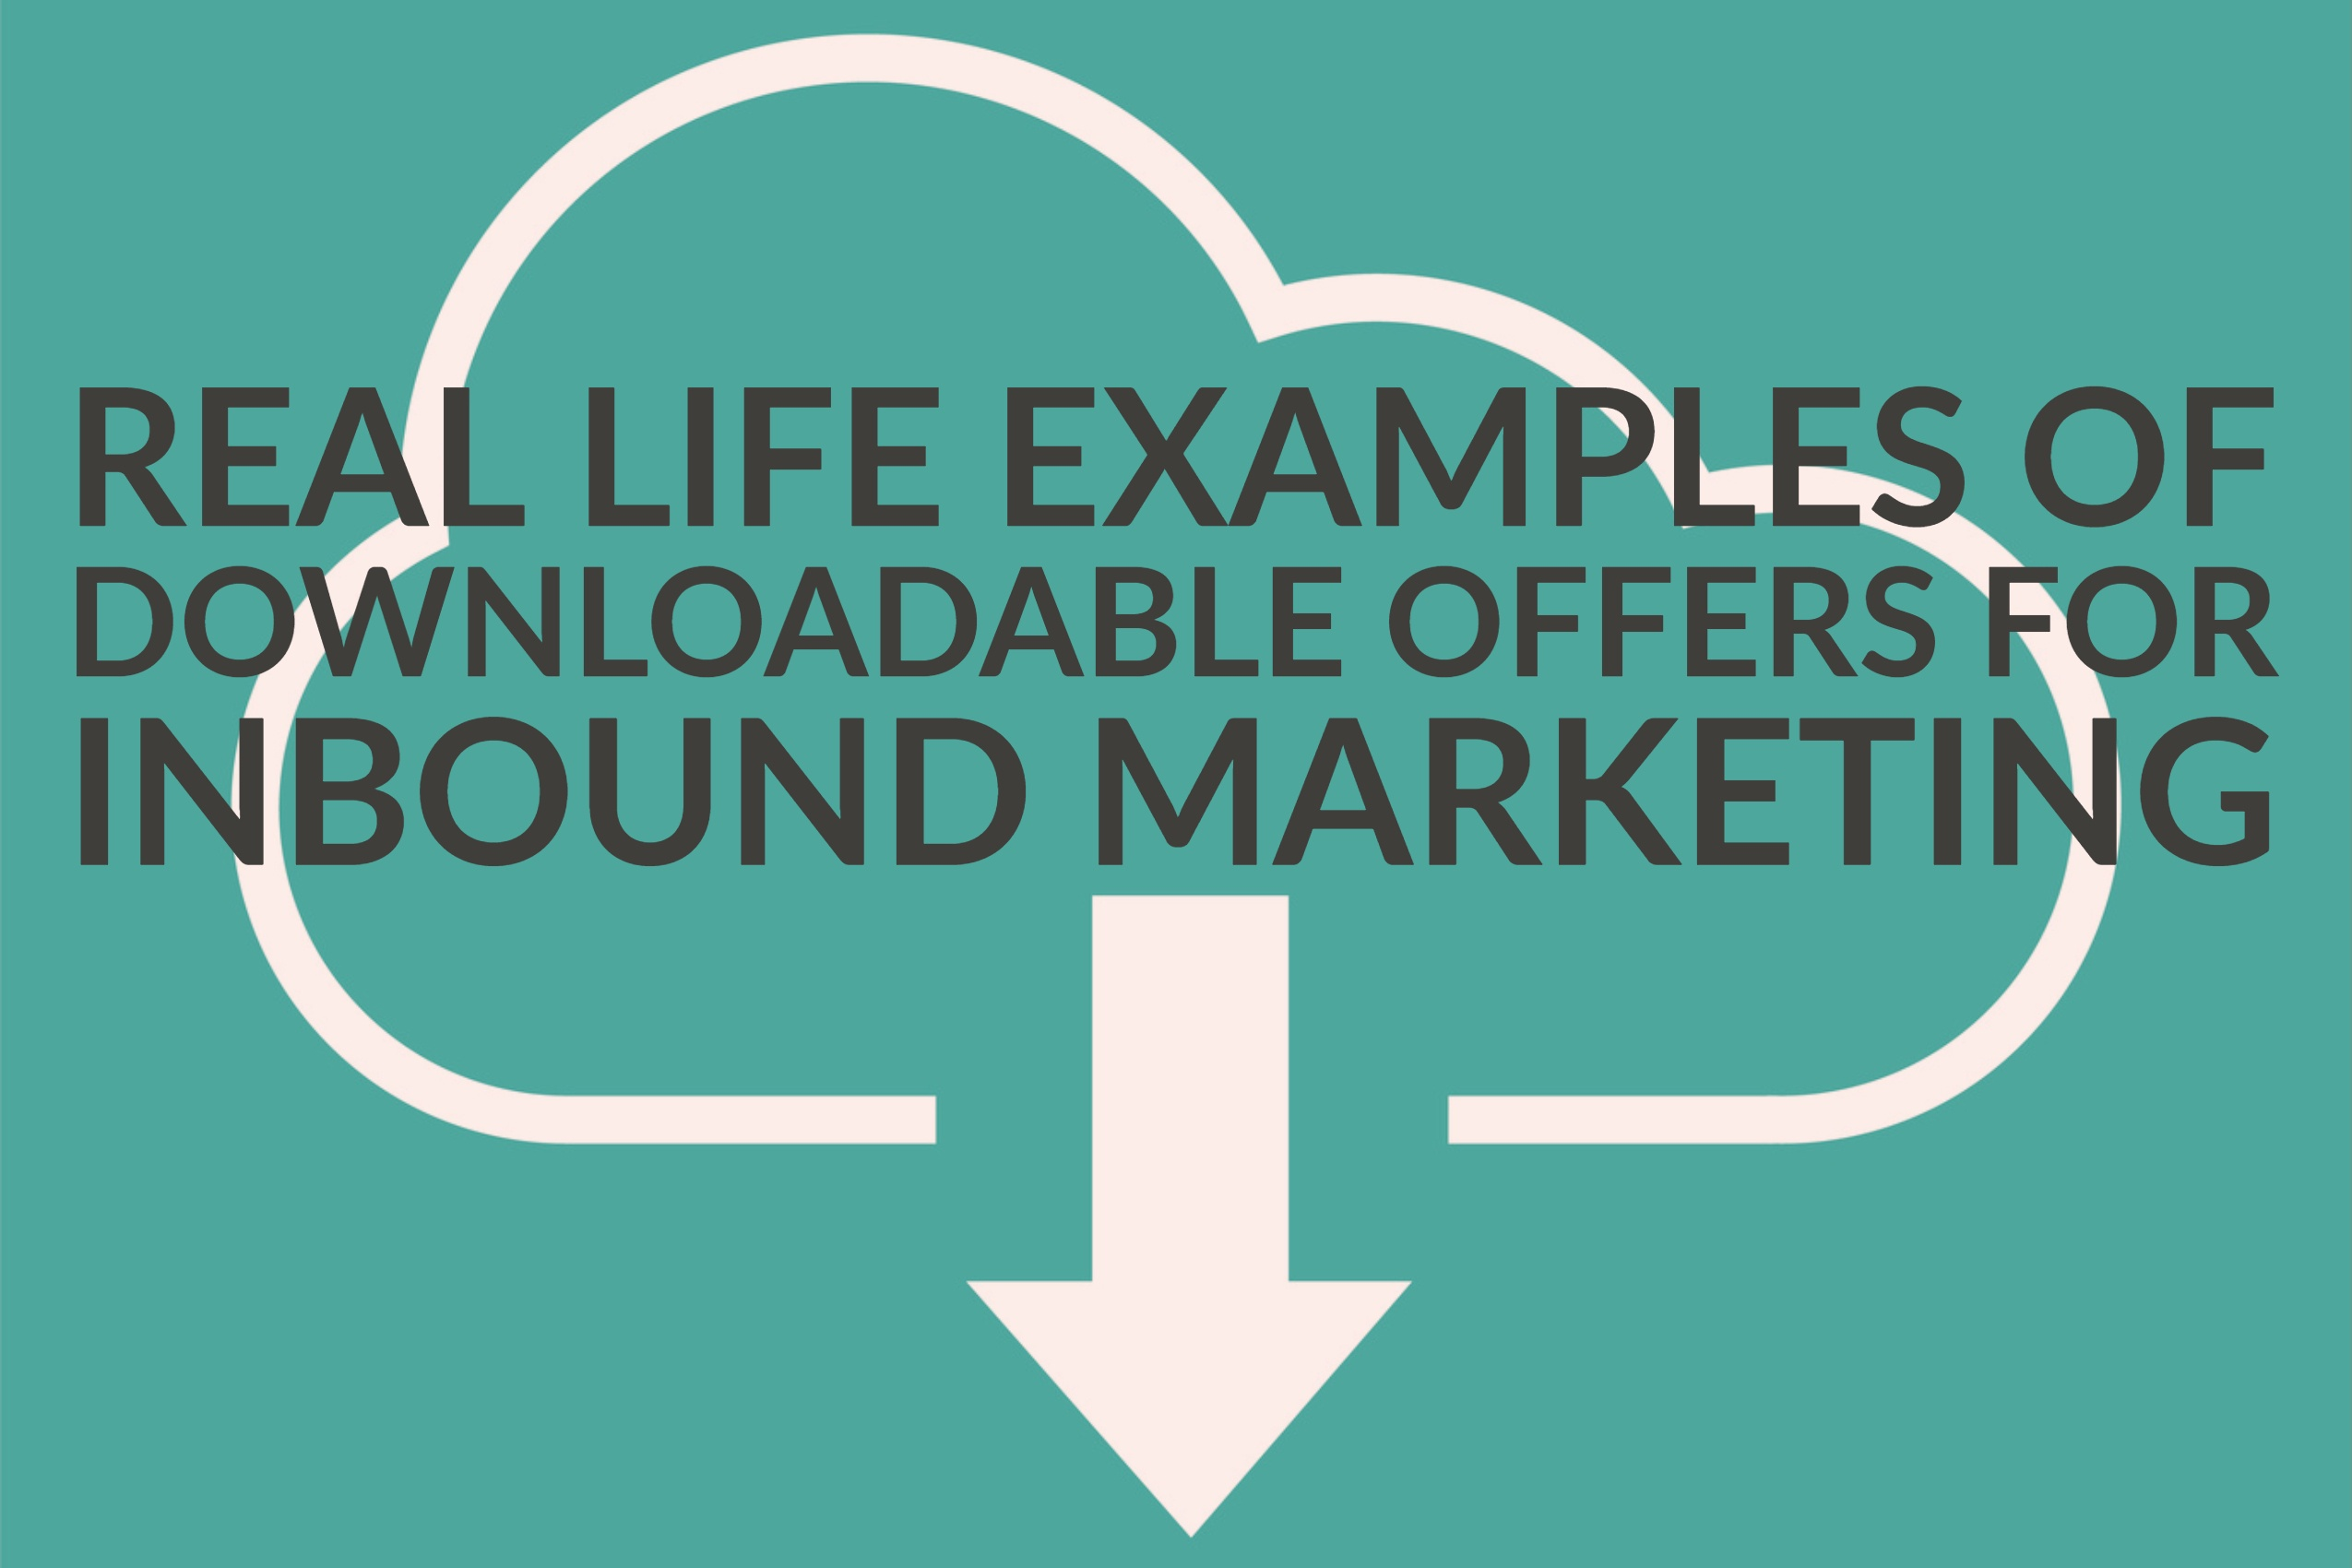 Real Life Examples of Downloadable Offers For Inbound Marketing